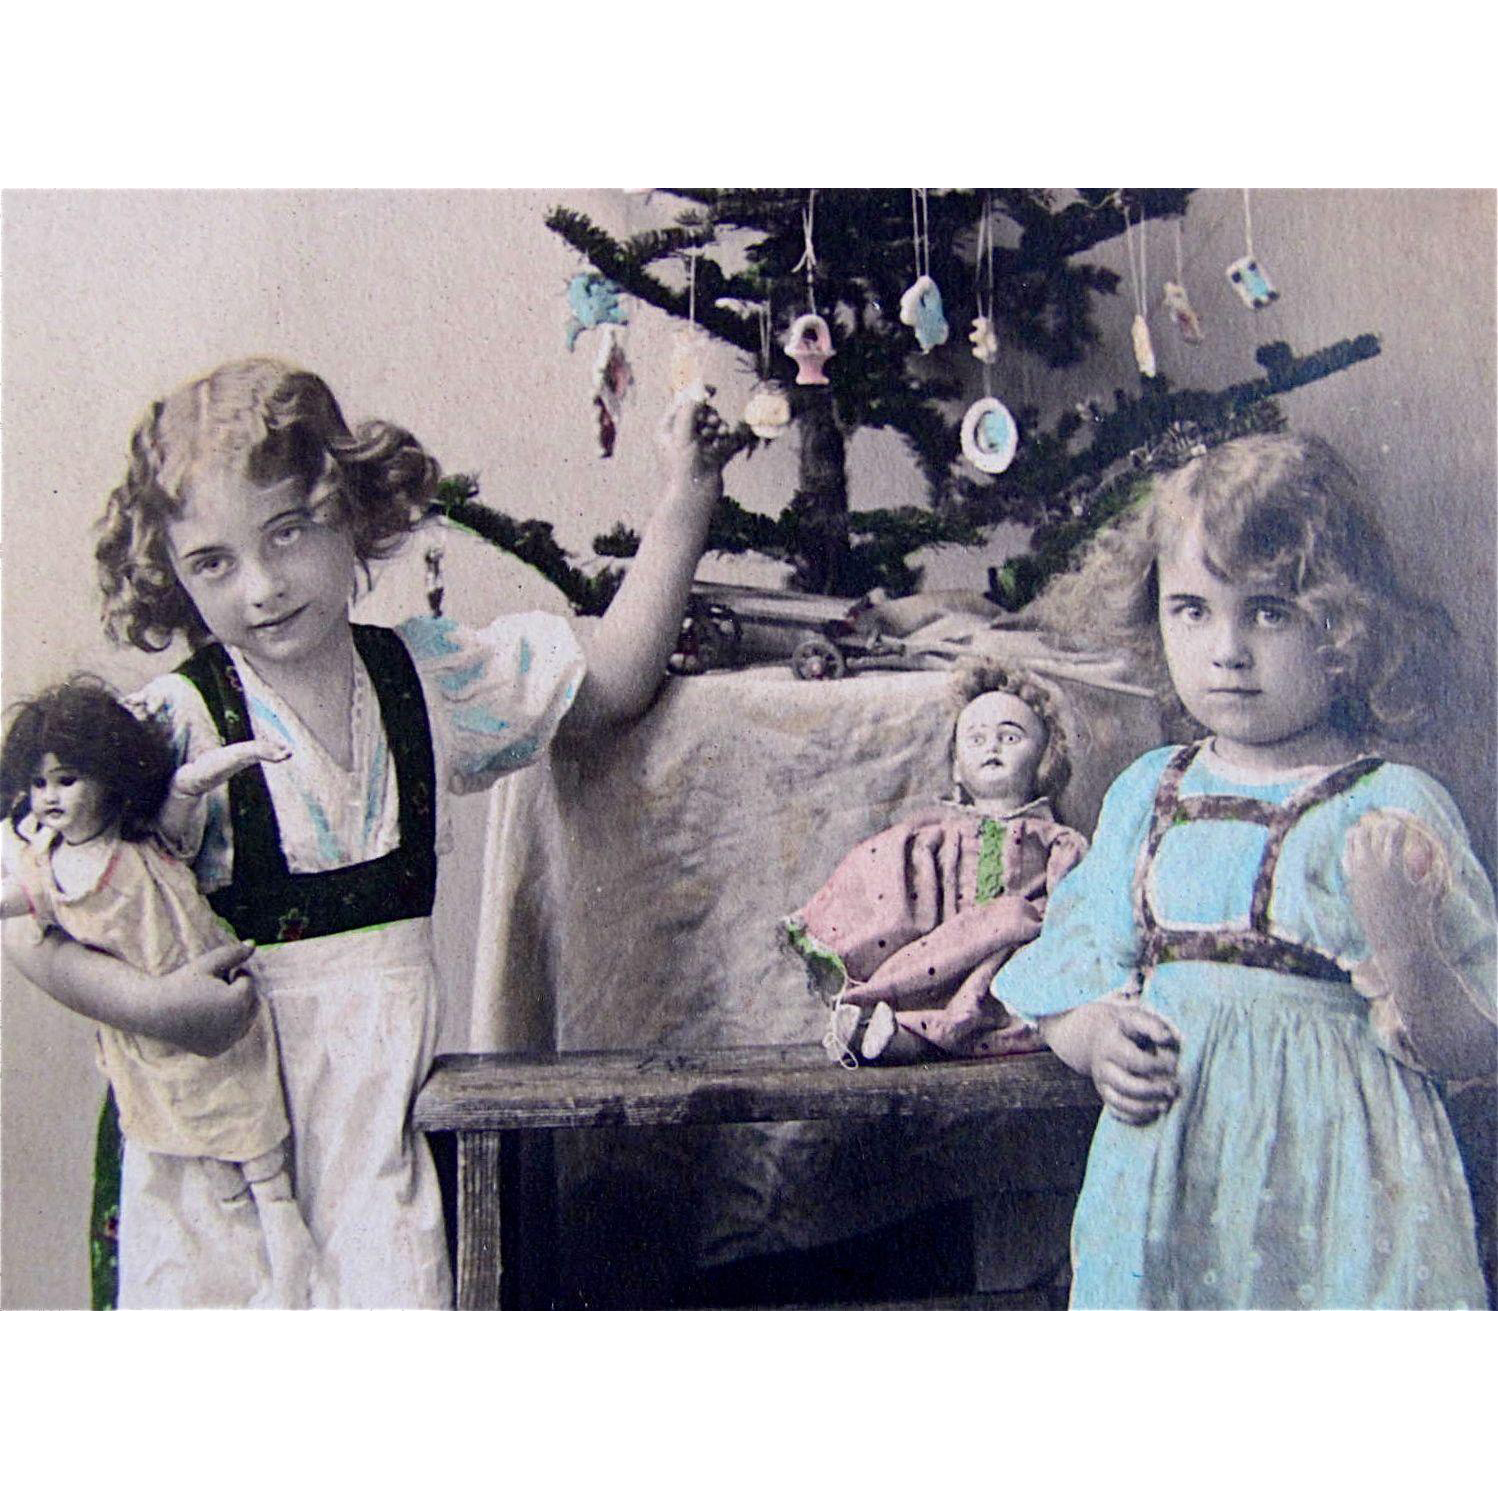 c1911 Tinted RPPC, Girls, Dolls, Toys, Decorated Christmas Tree, Real Photo Postcard, Fawcette #1150